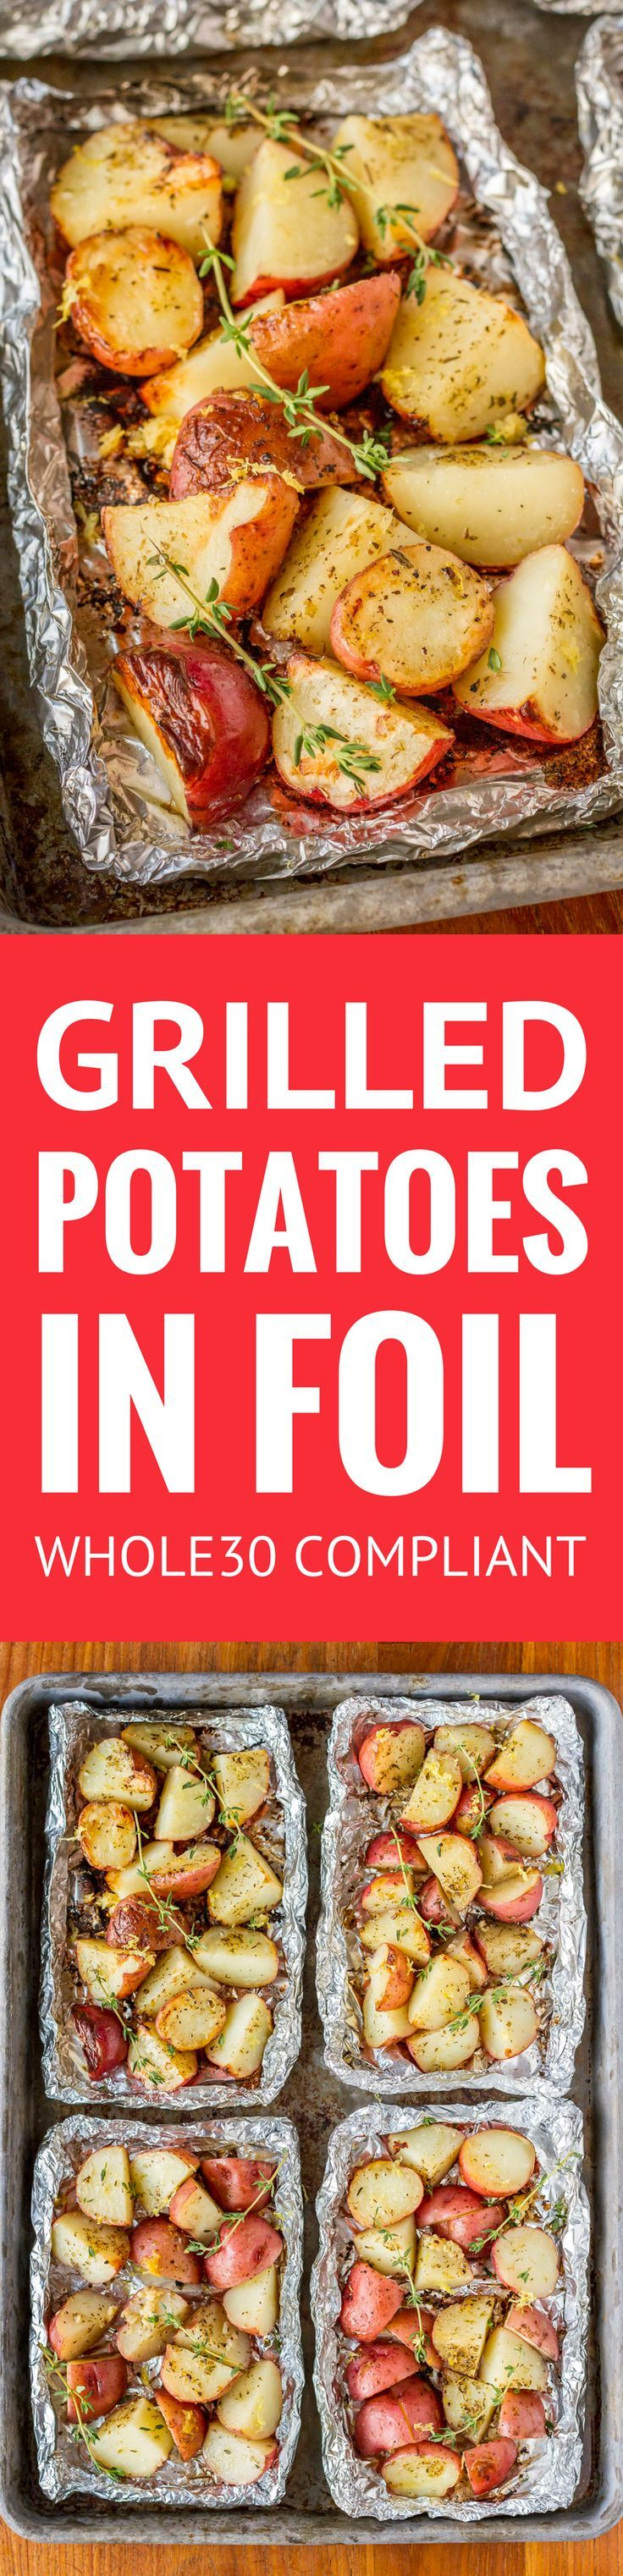 Grilled Potatoes In Foil -- with just 5 ingredients, these grilled potatoes in foil packets have everything going for them: quick, easy, delicious, and virtually mess-free... AND they're Whole30 compliant! | whole30 potatoes | potatoes in foil in oven | p